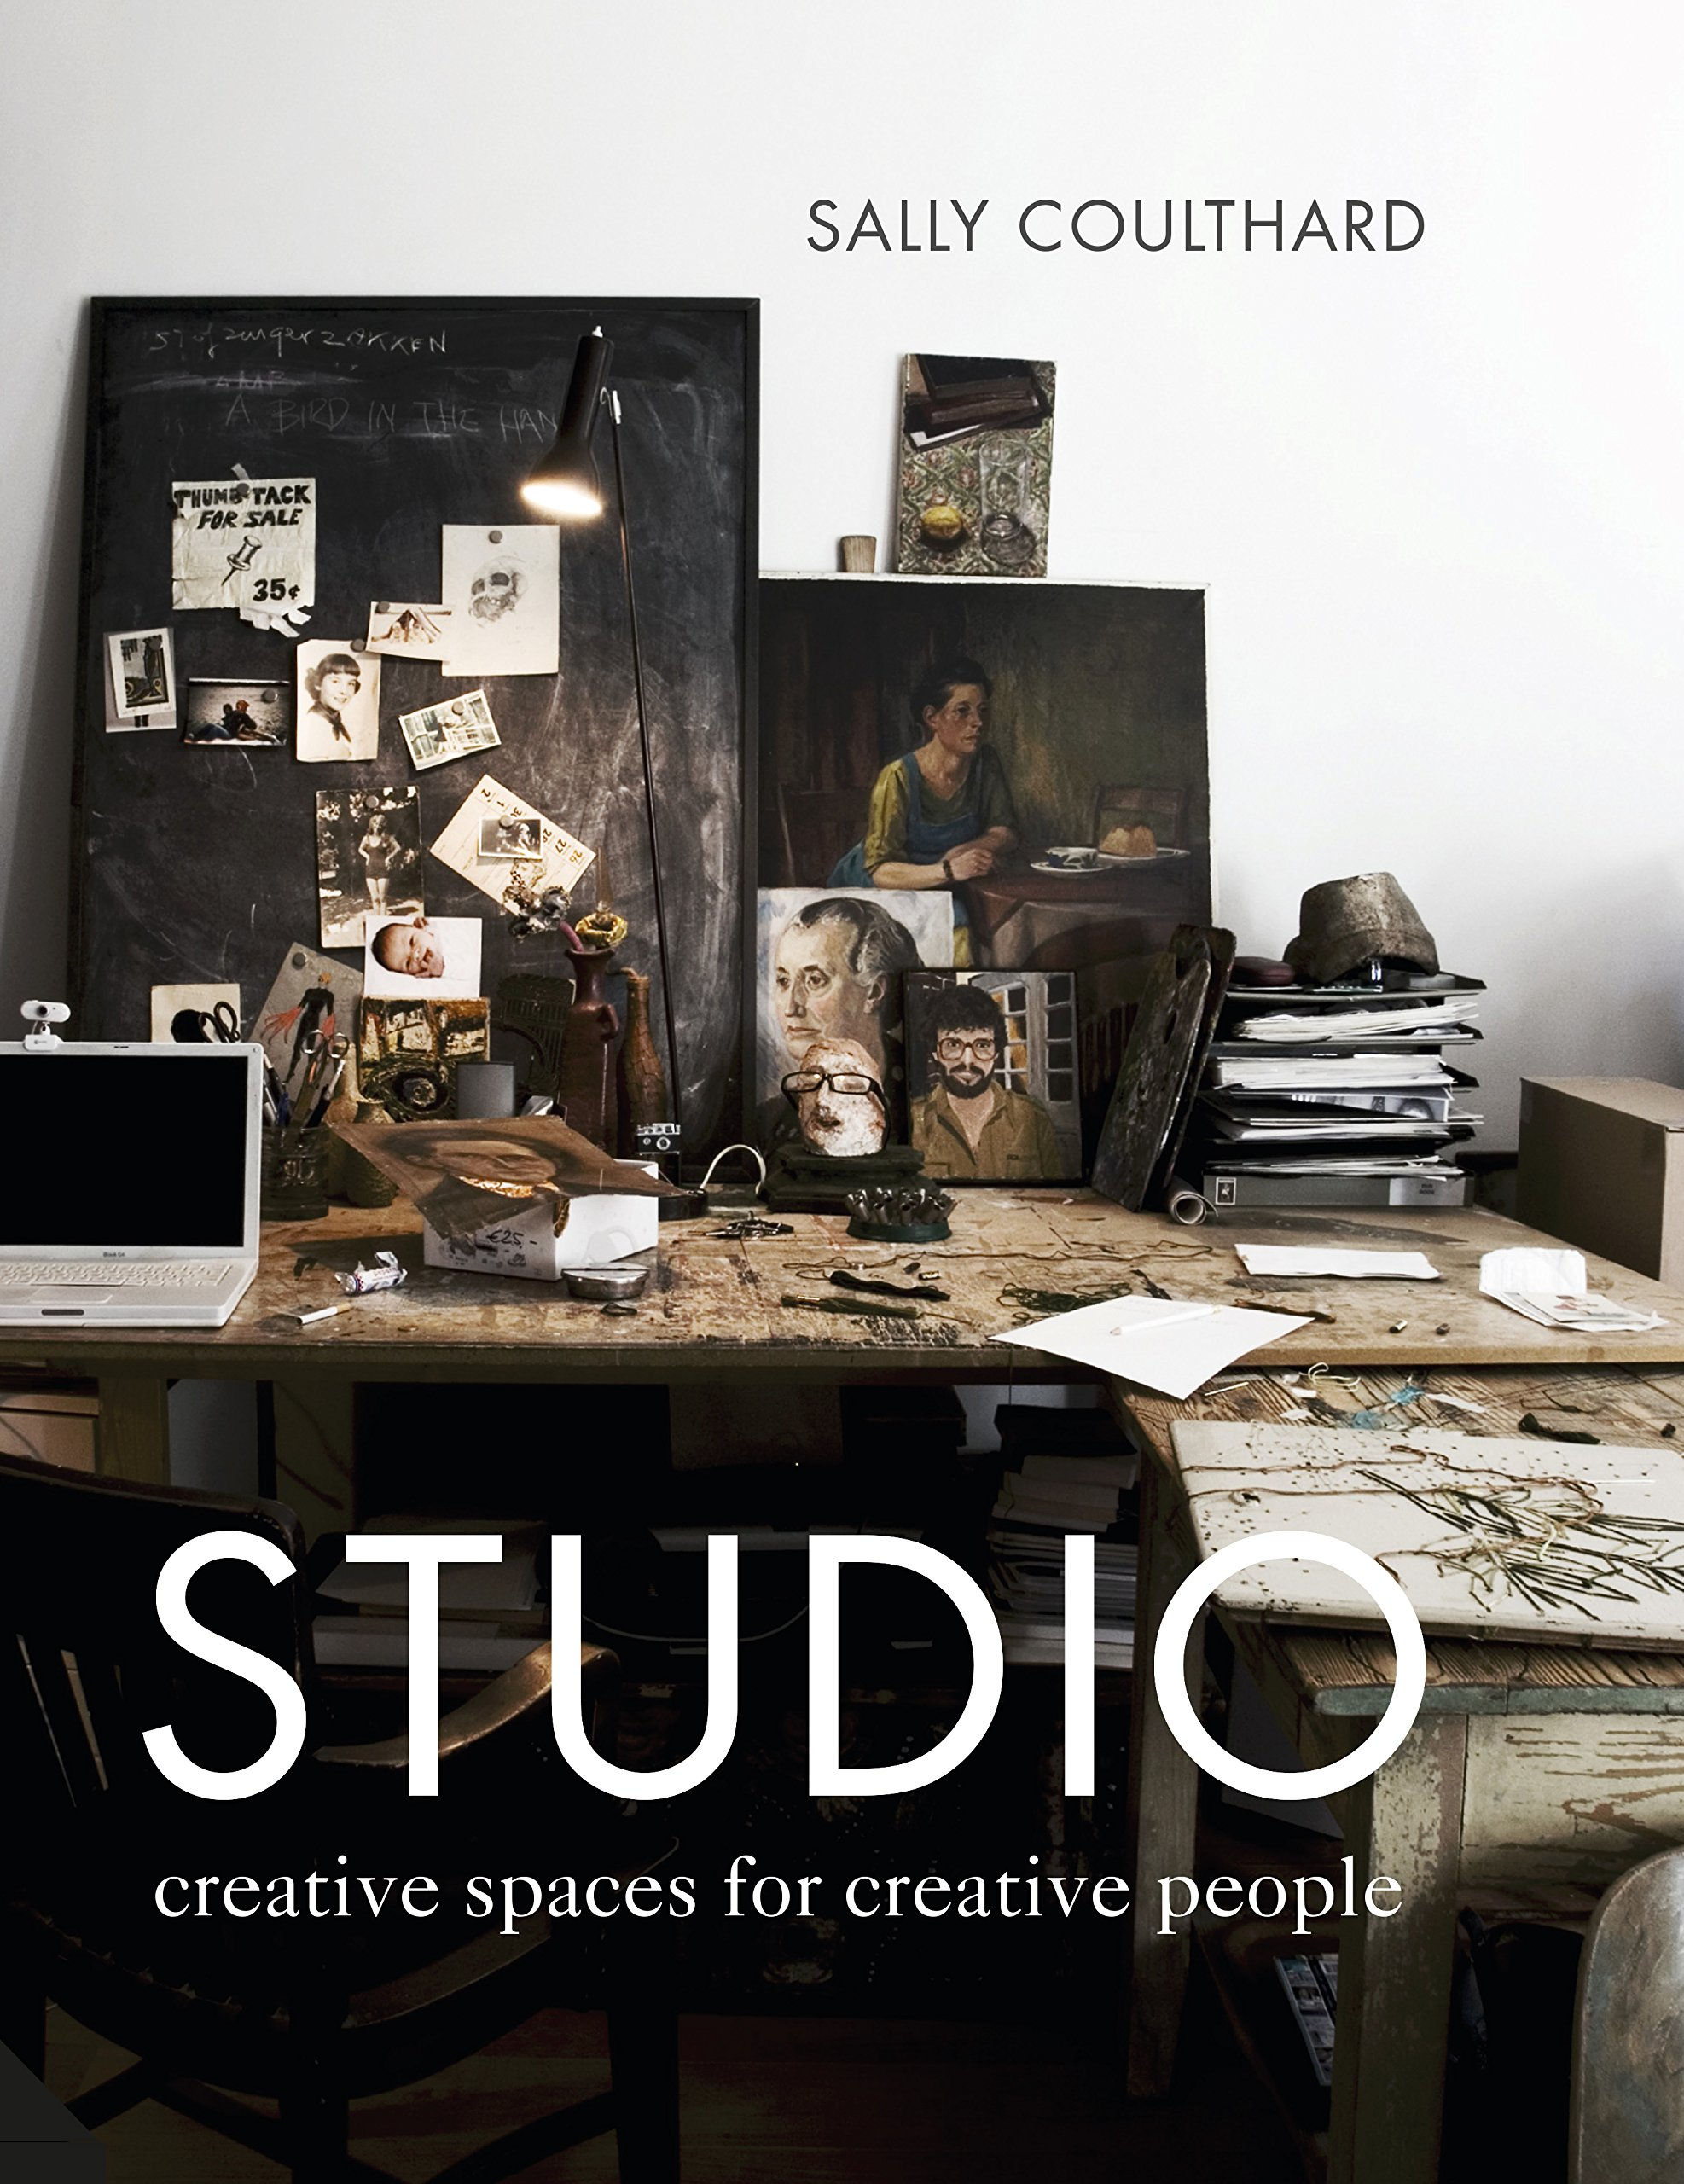 Image result for studio creative spaces